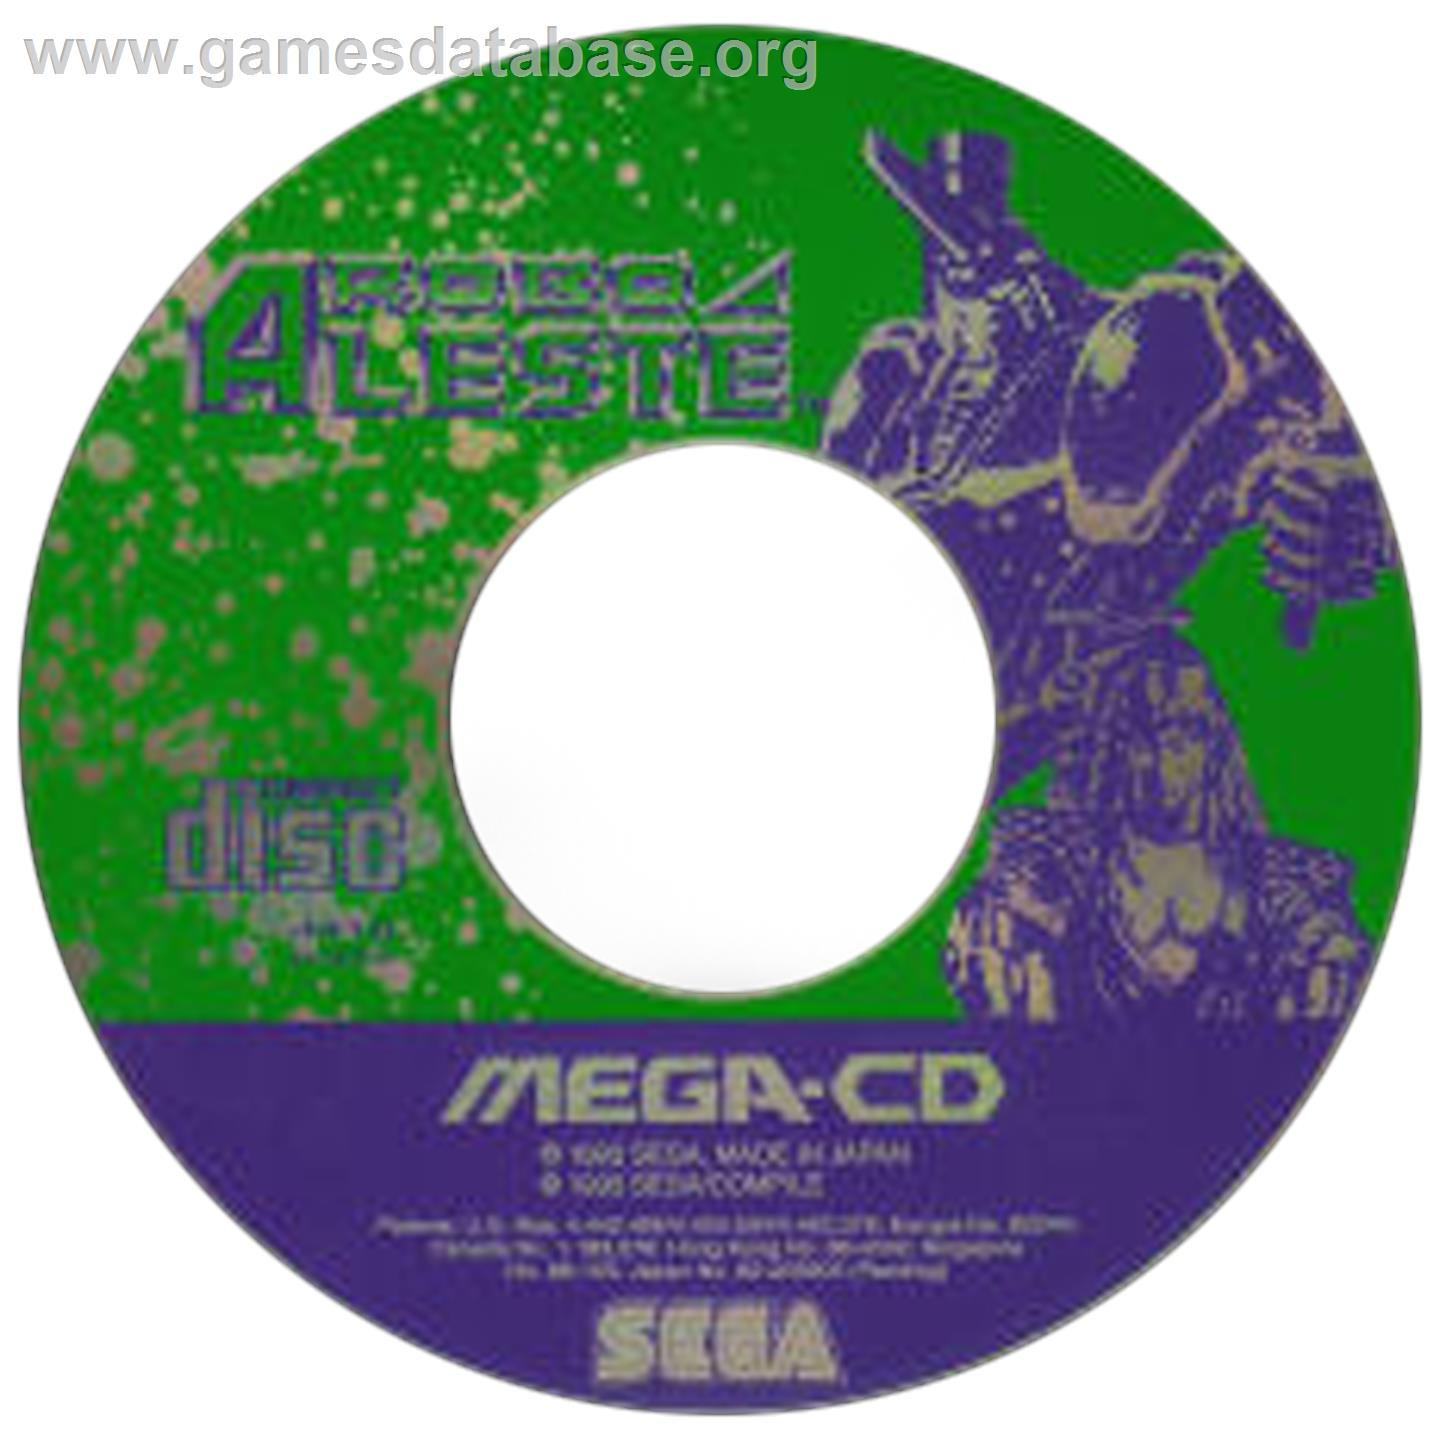 Robo Aleste - Sega CD - Artwork - CD